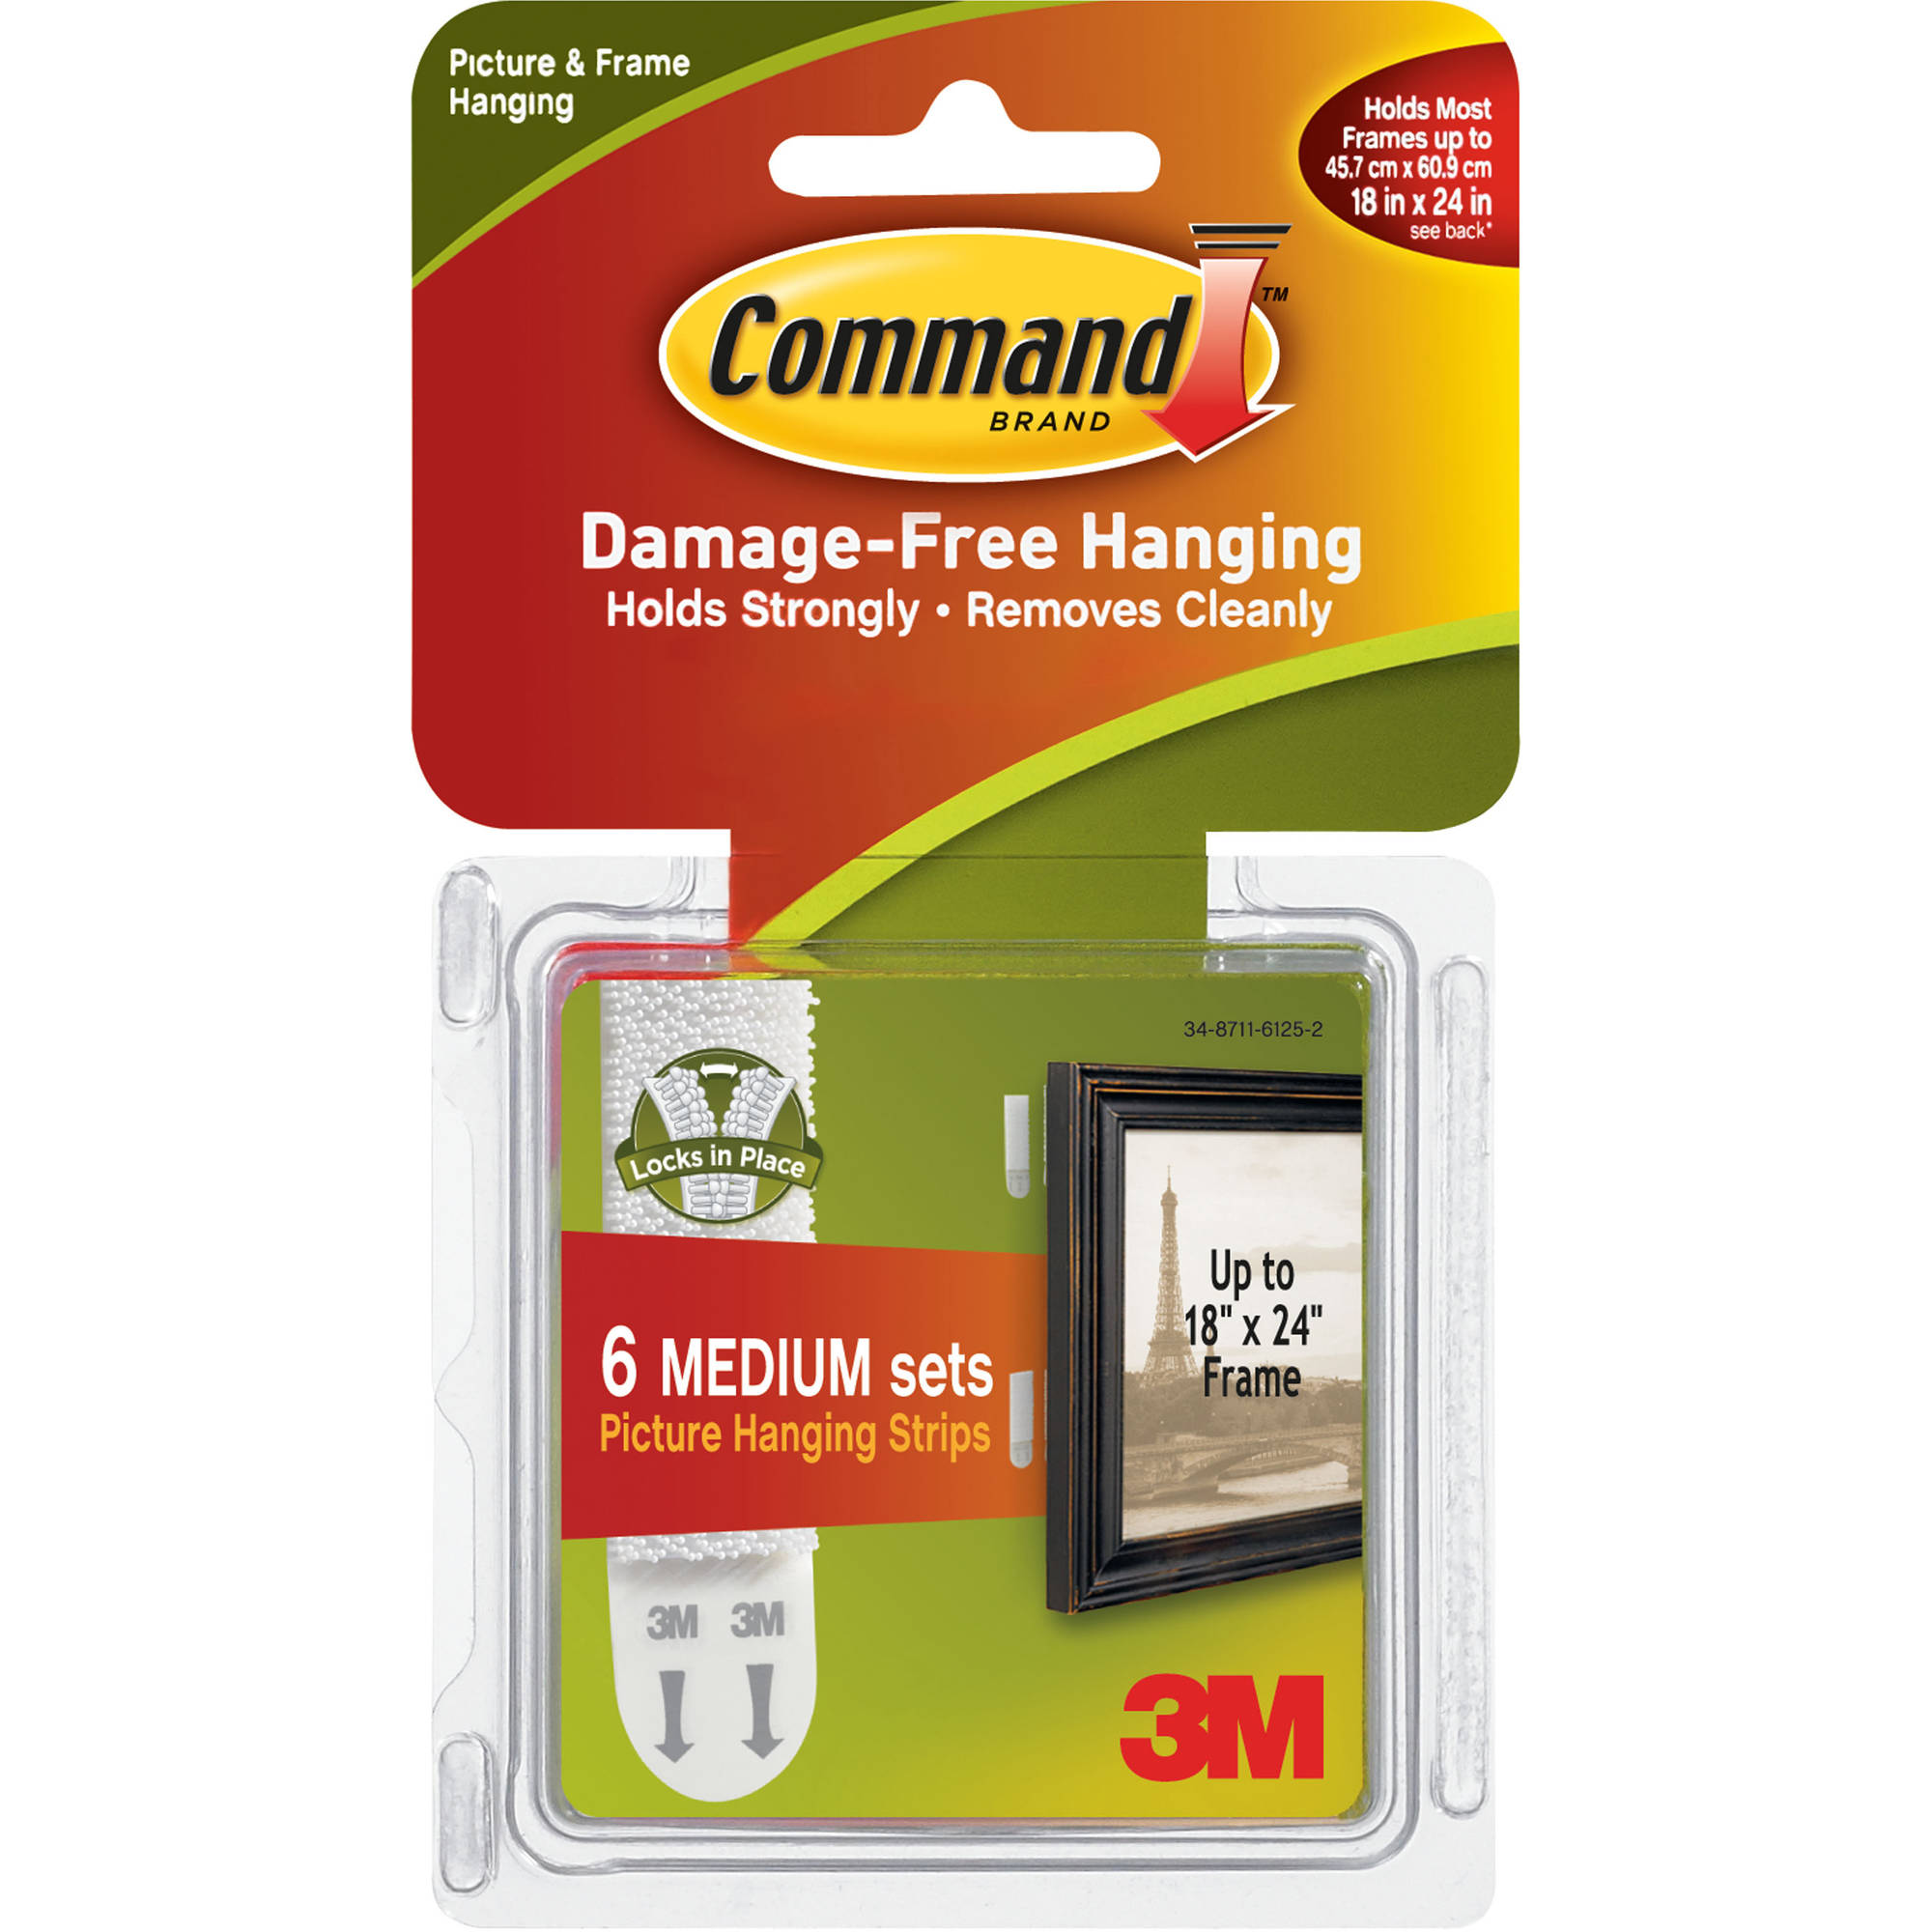 Command Medium Picture Hanging Strips: Bulk  Pack, Incl. 6 Sets of Medium Strips, 17204